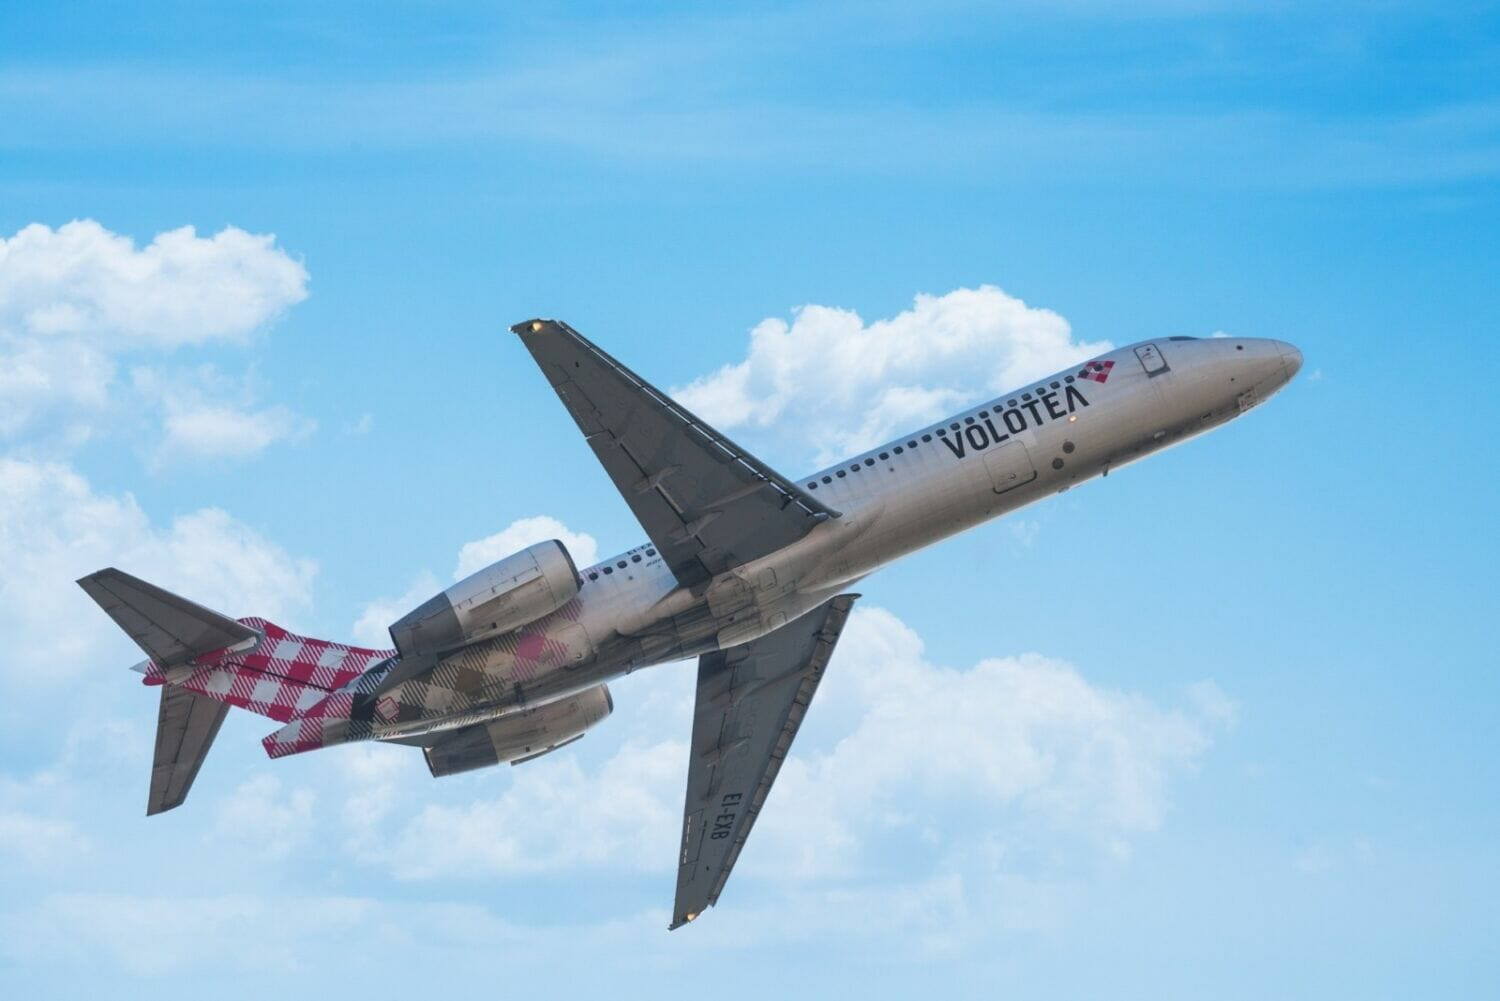 Volotea Boeing 717 aircraft taking off